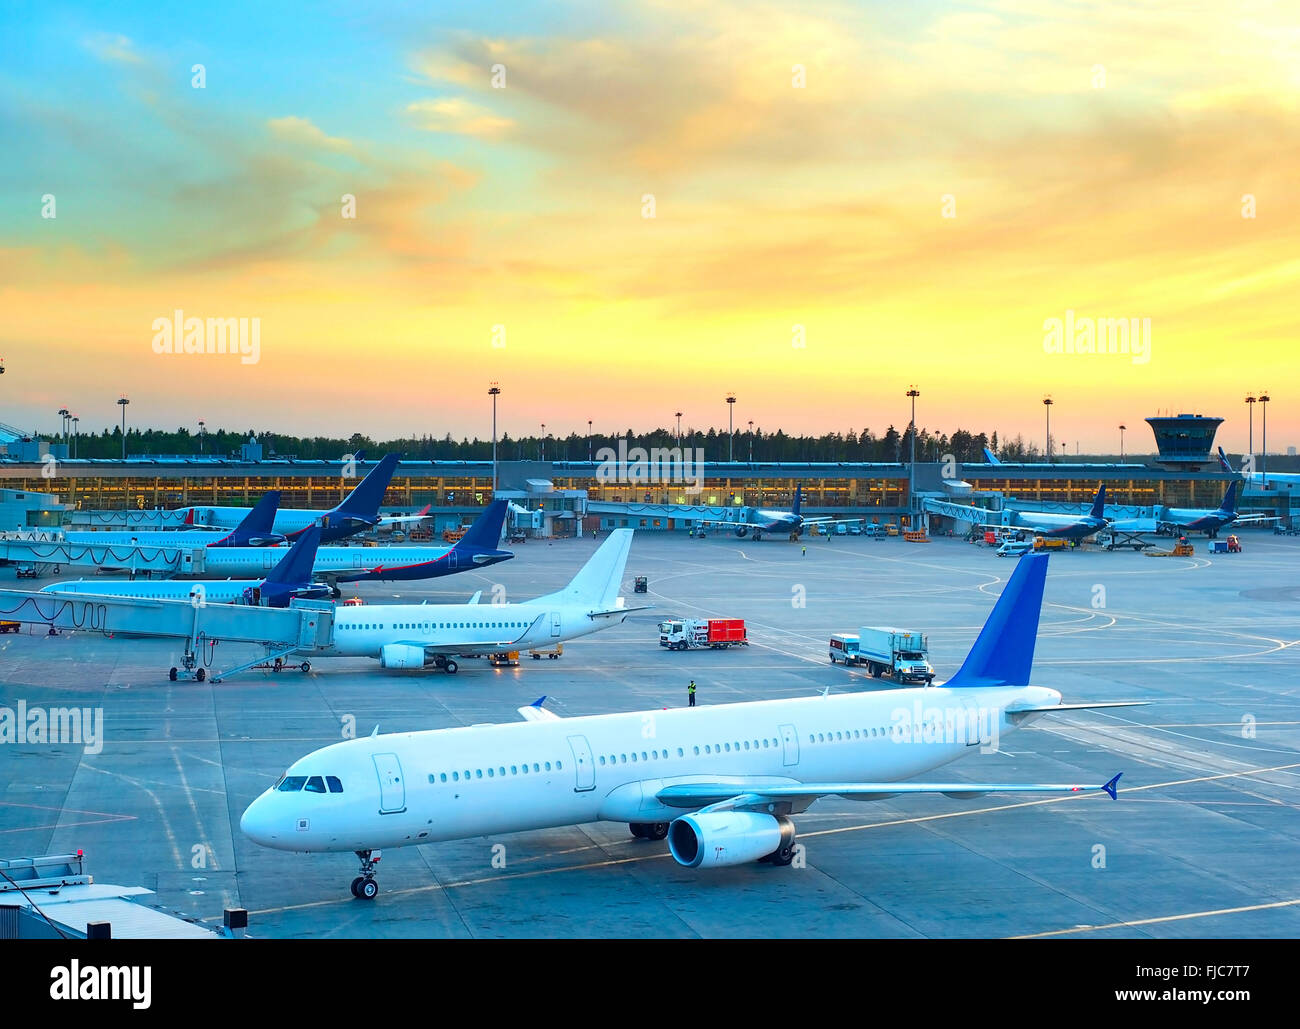 Airplane under loading in an airport at beautiful sunset - Stock Image